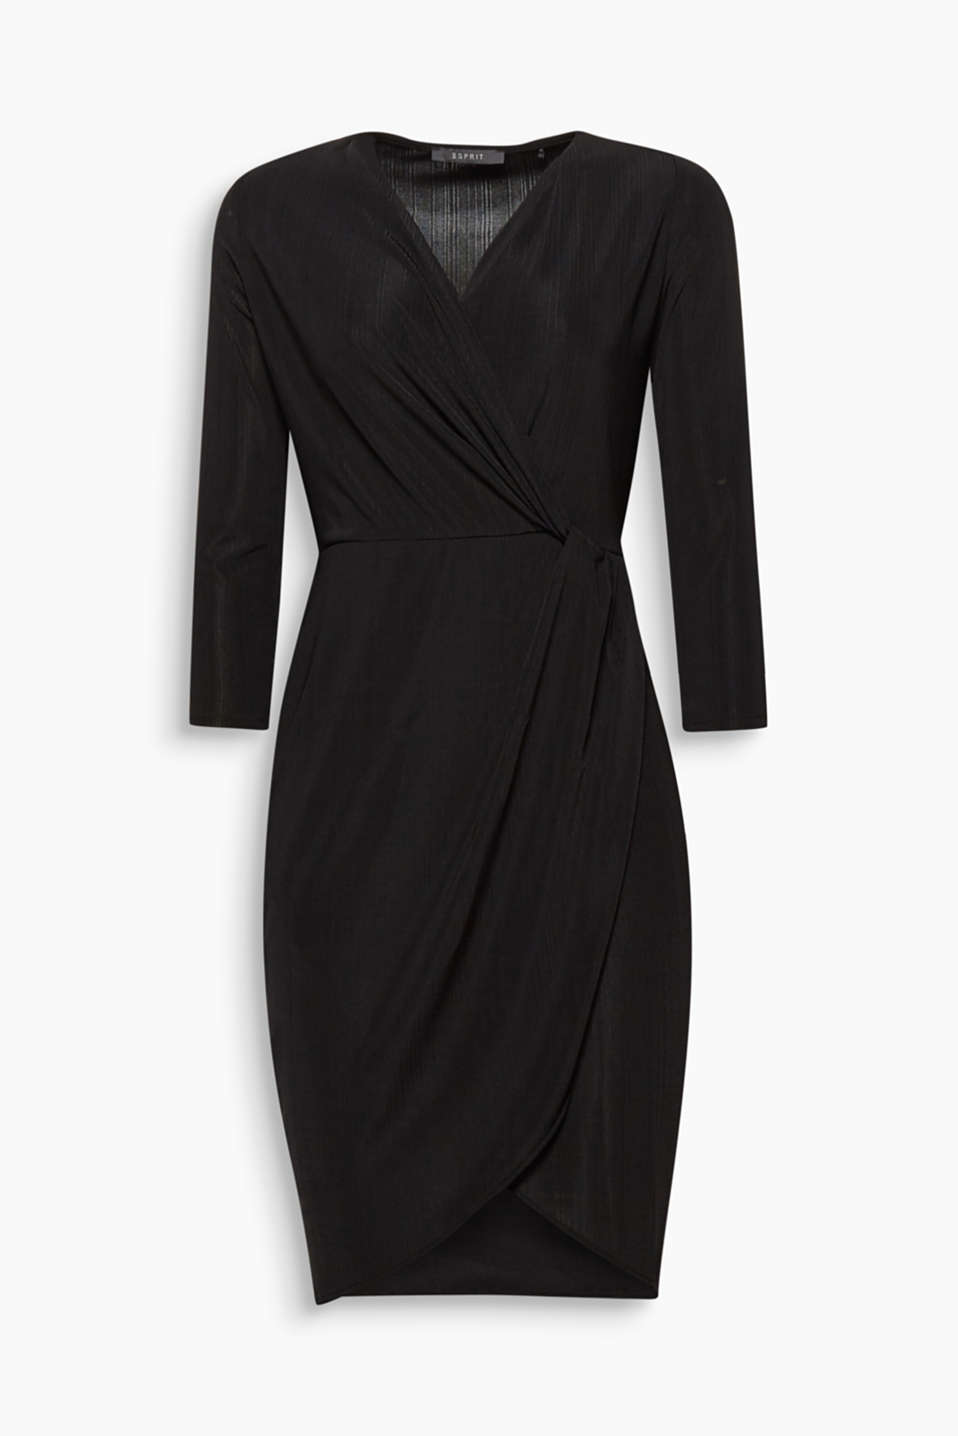 For an instant chic look, this jersey dress with textured stripes and wrap-over details is perfect for parties!